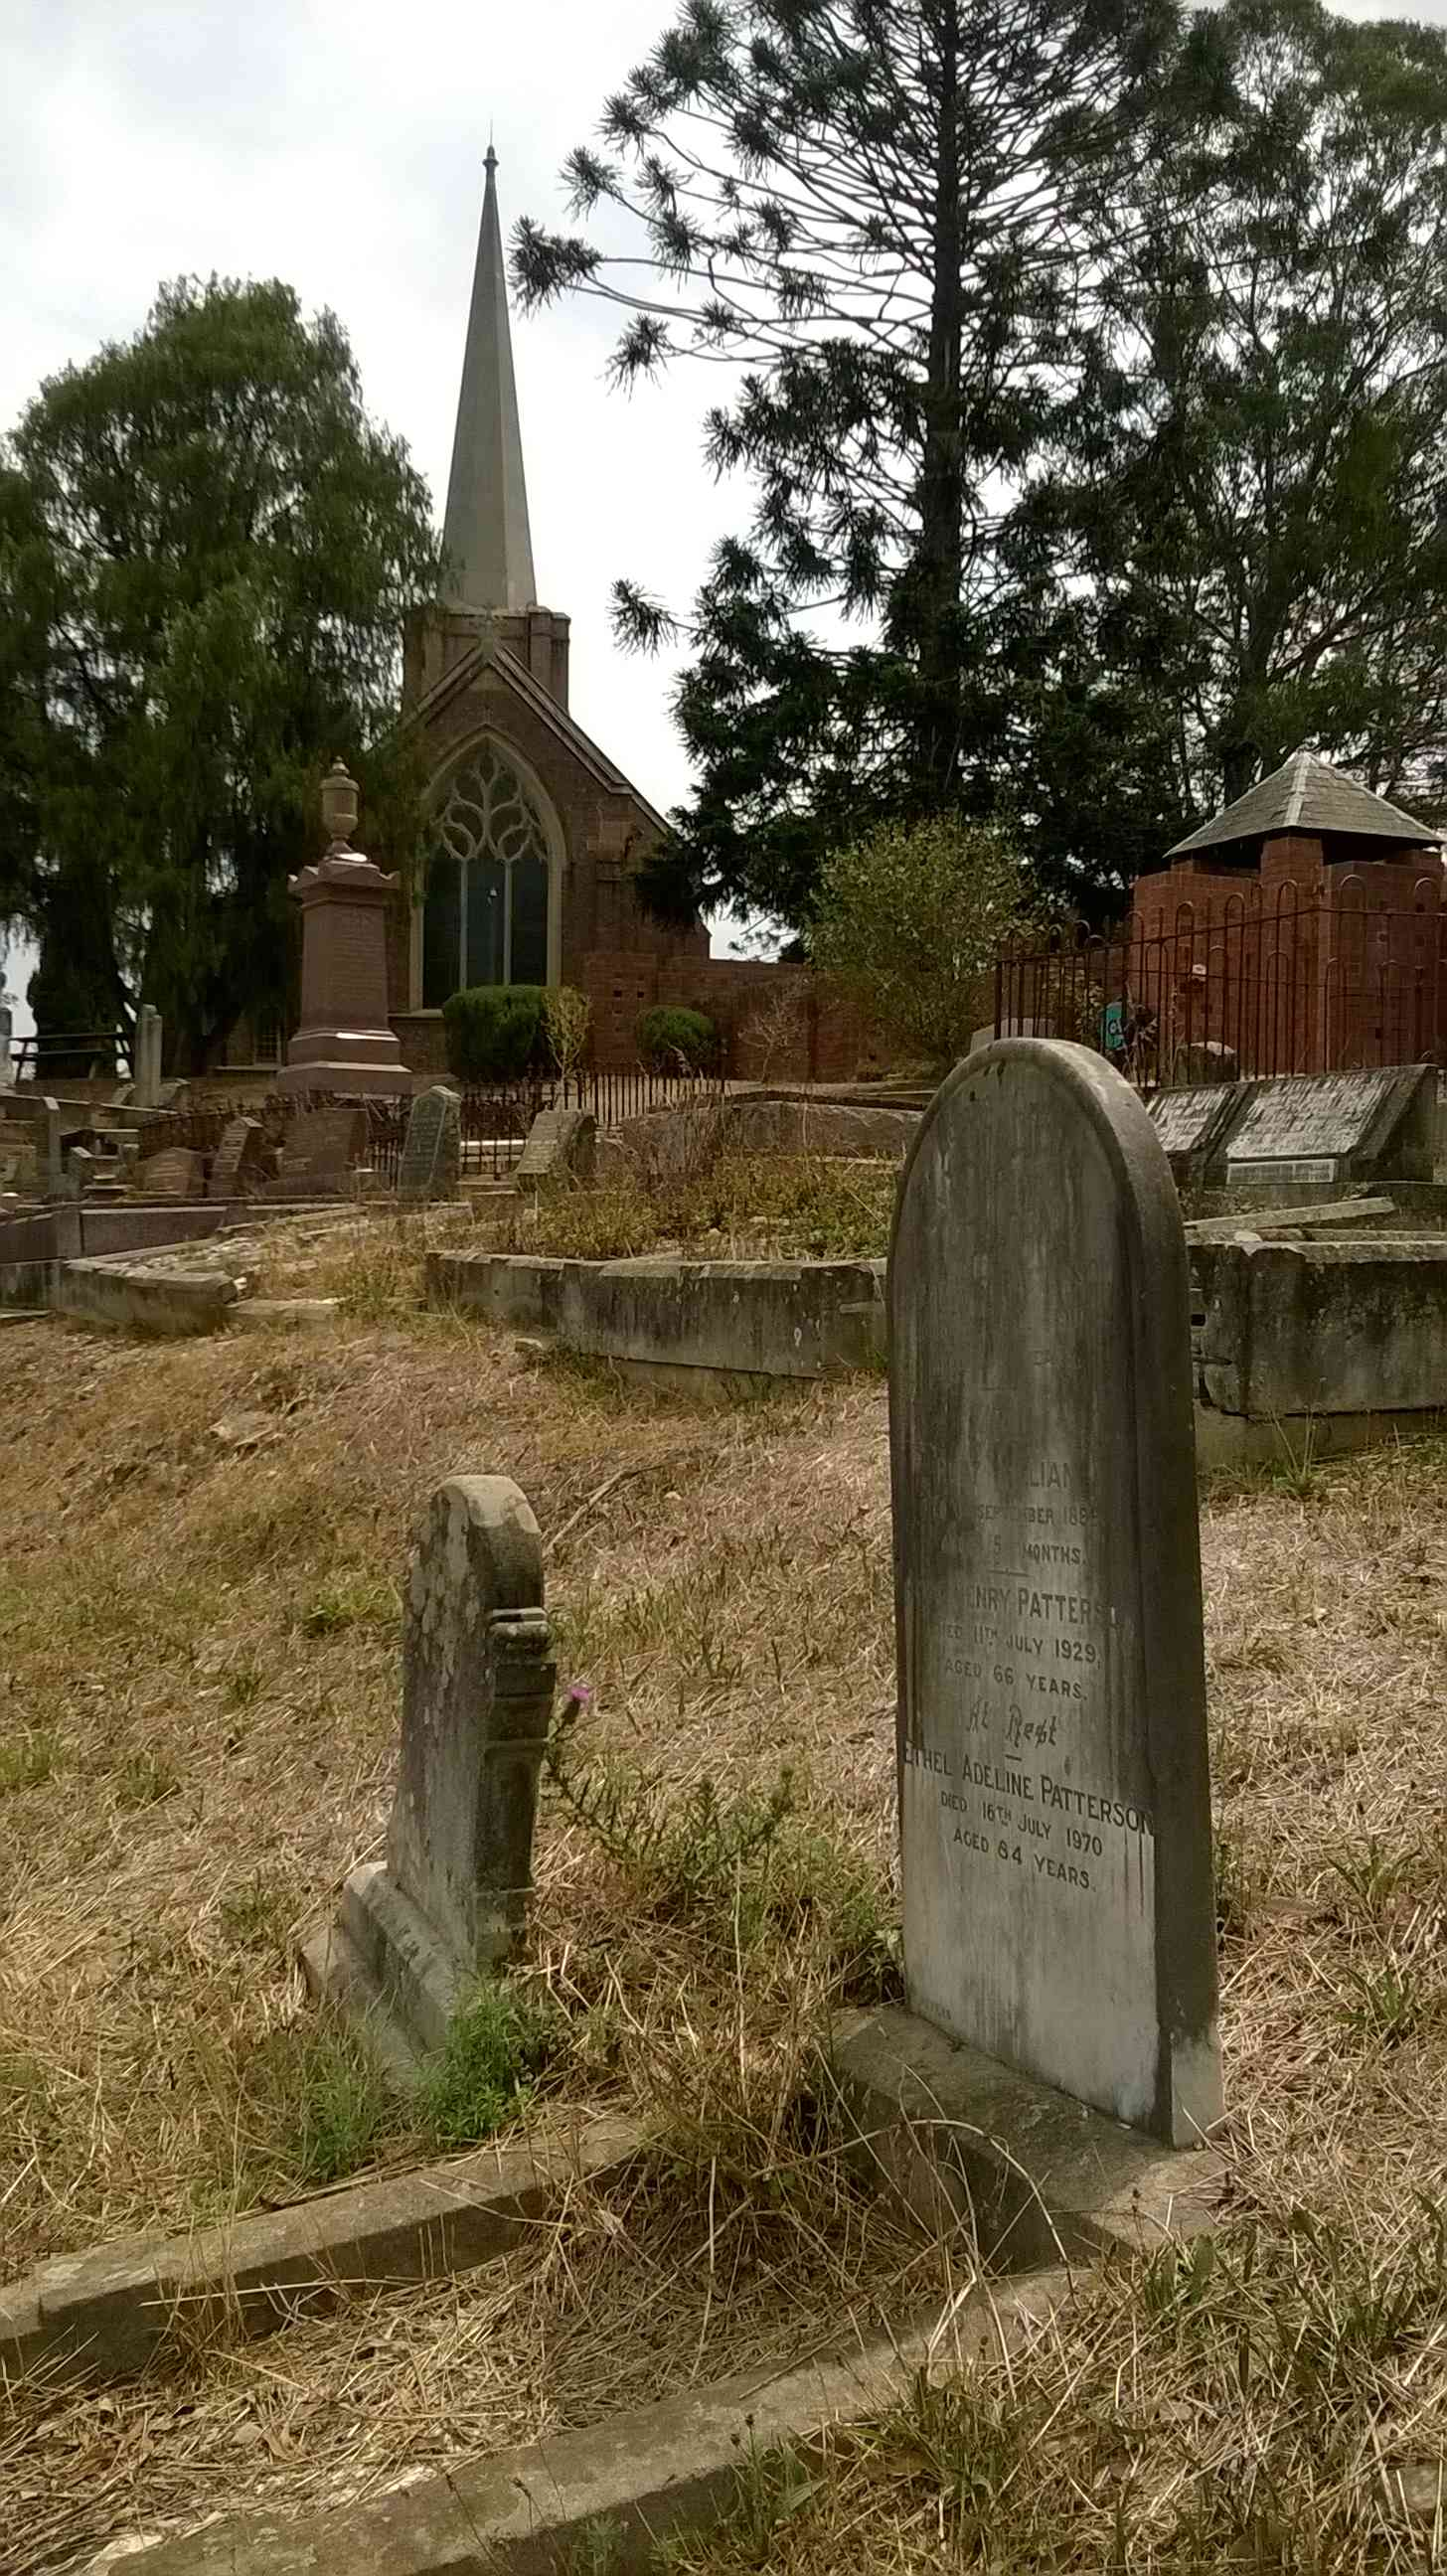 Camden St John Cemetery Catherine Patterson Grave 2020 JOBrien lowres